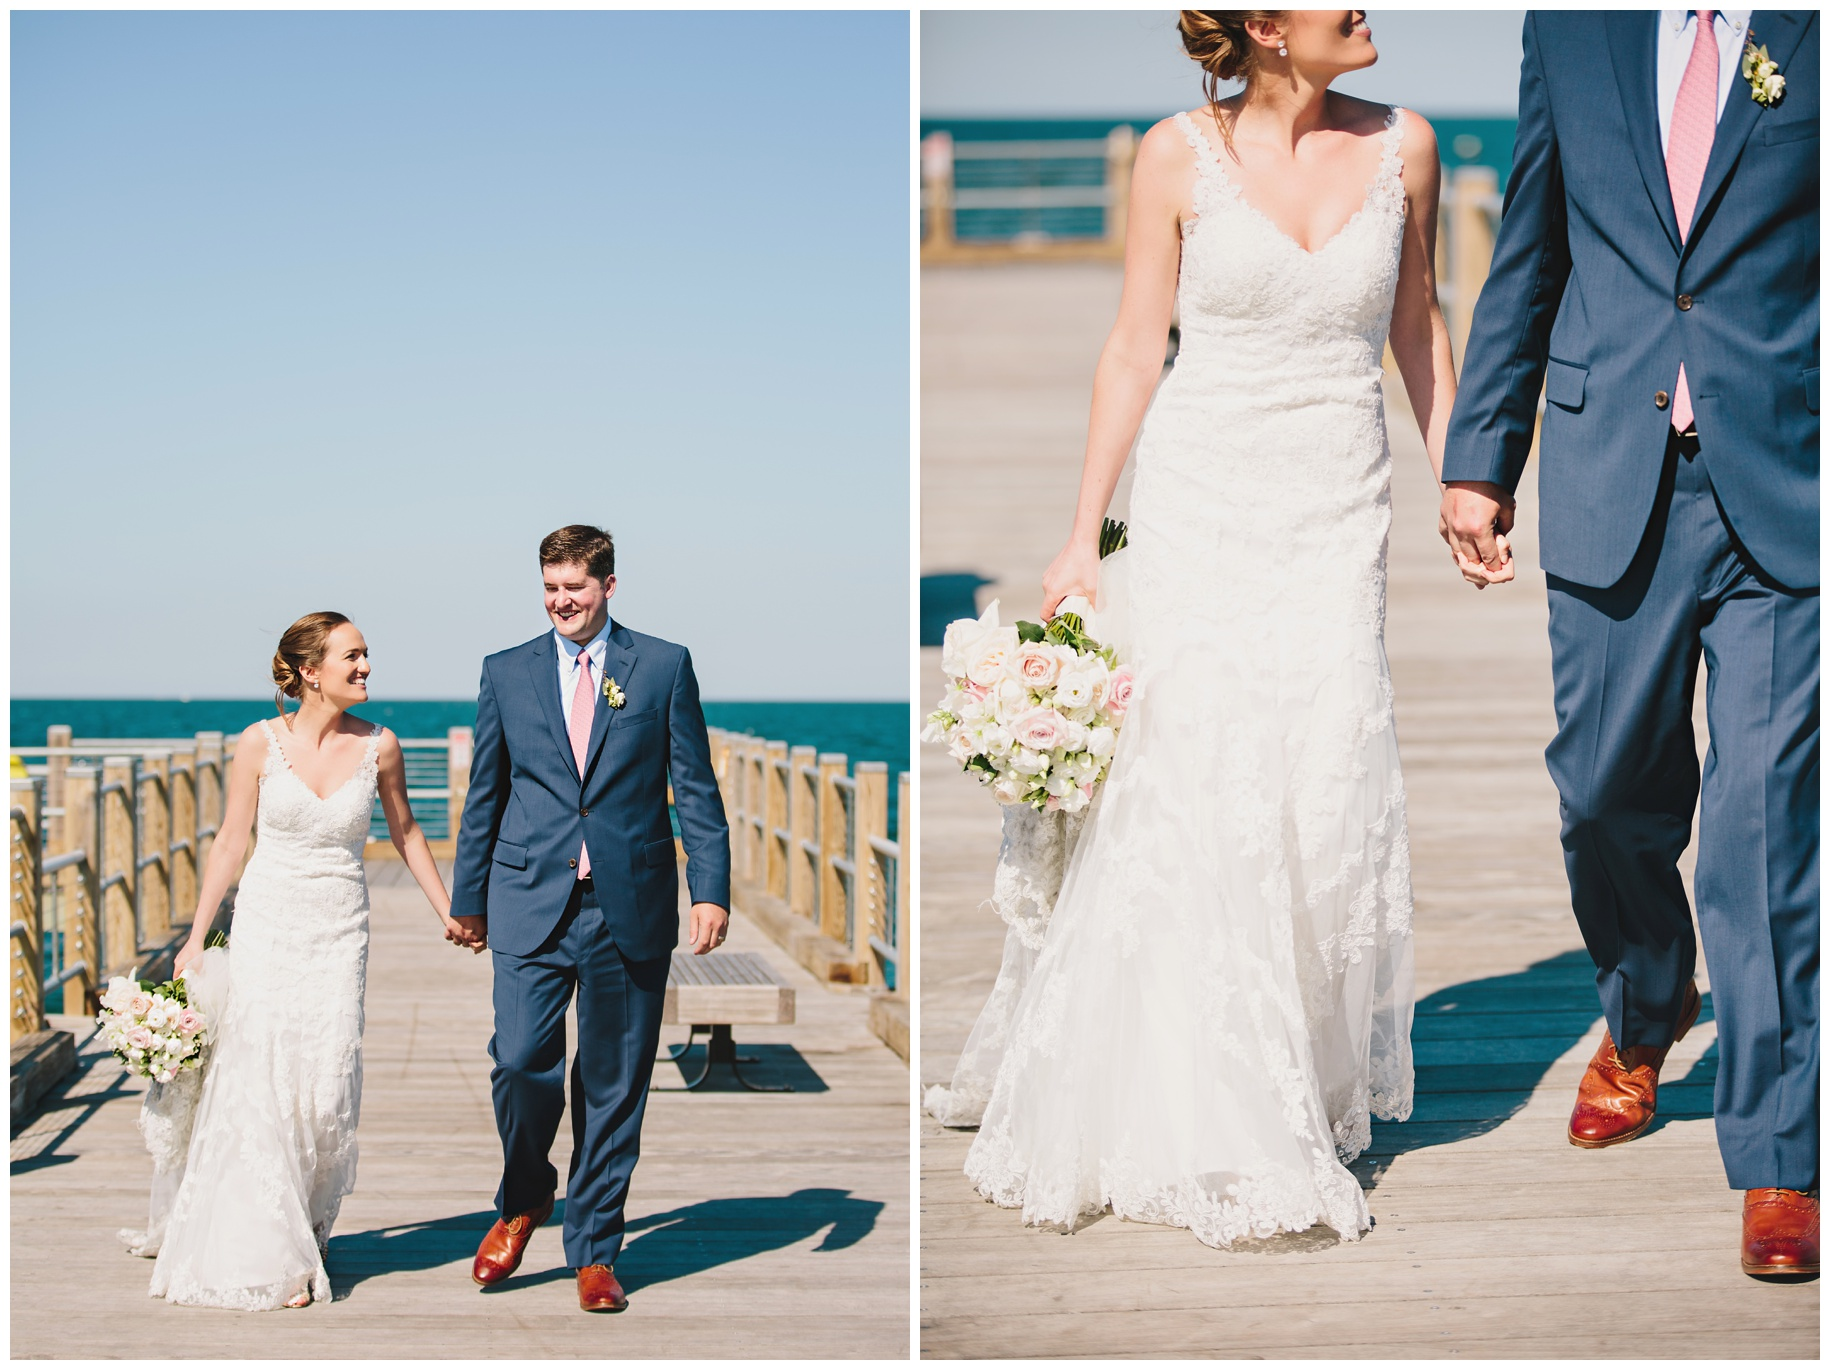 maineweddingphotographer_massachusetts_marthasvineyard_island_newengland-037